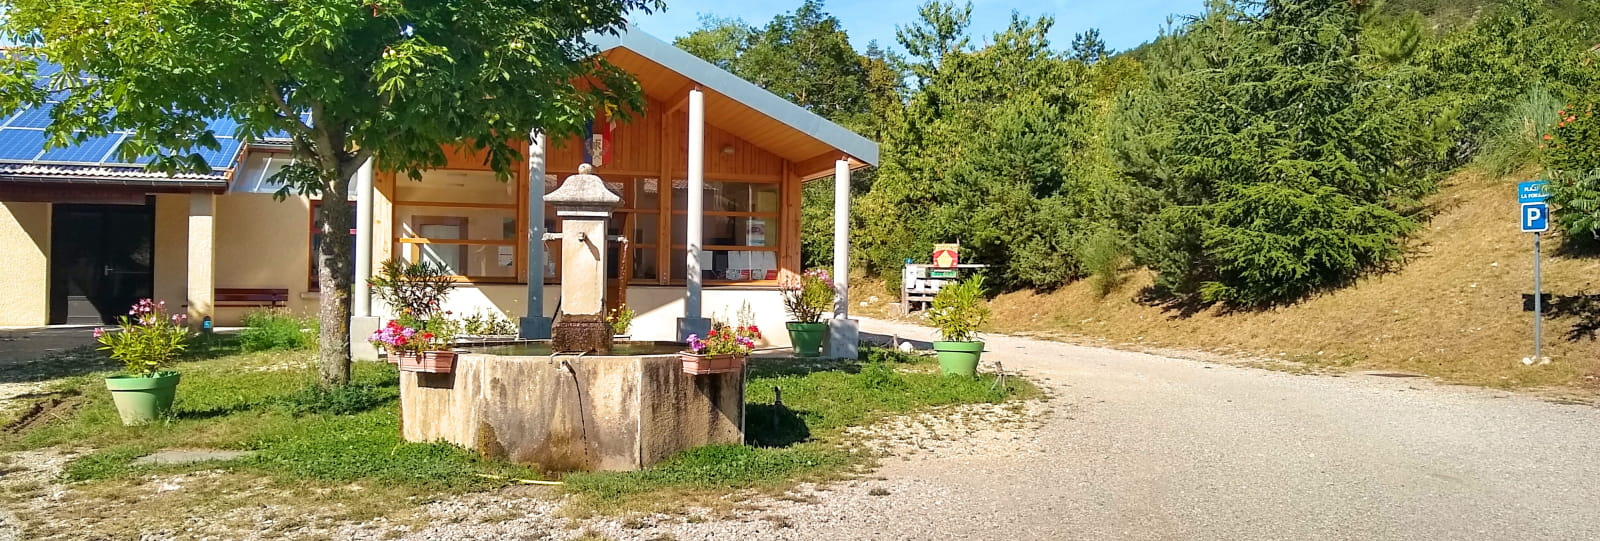 Camping les Thibauds